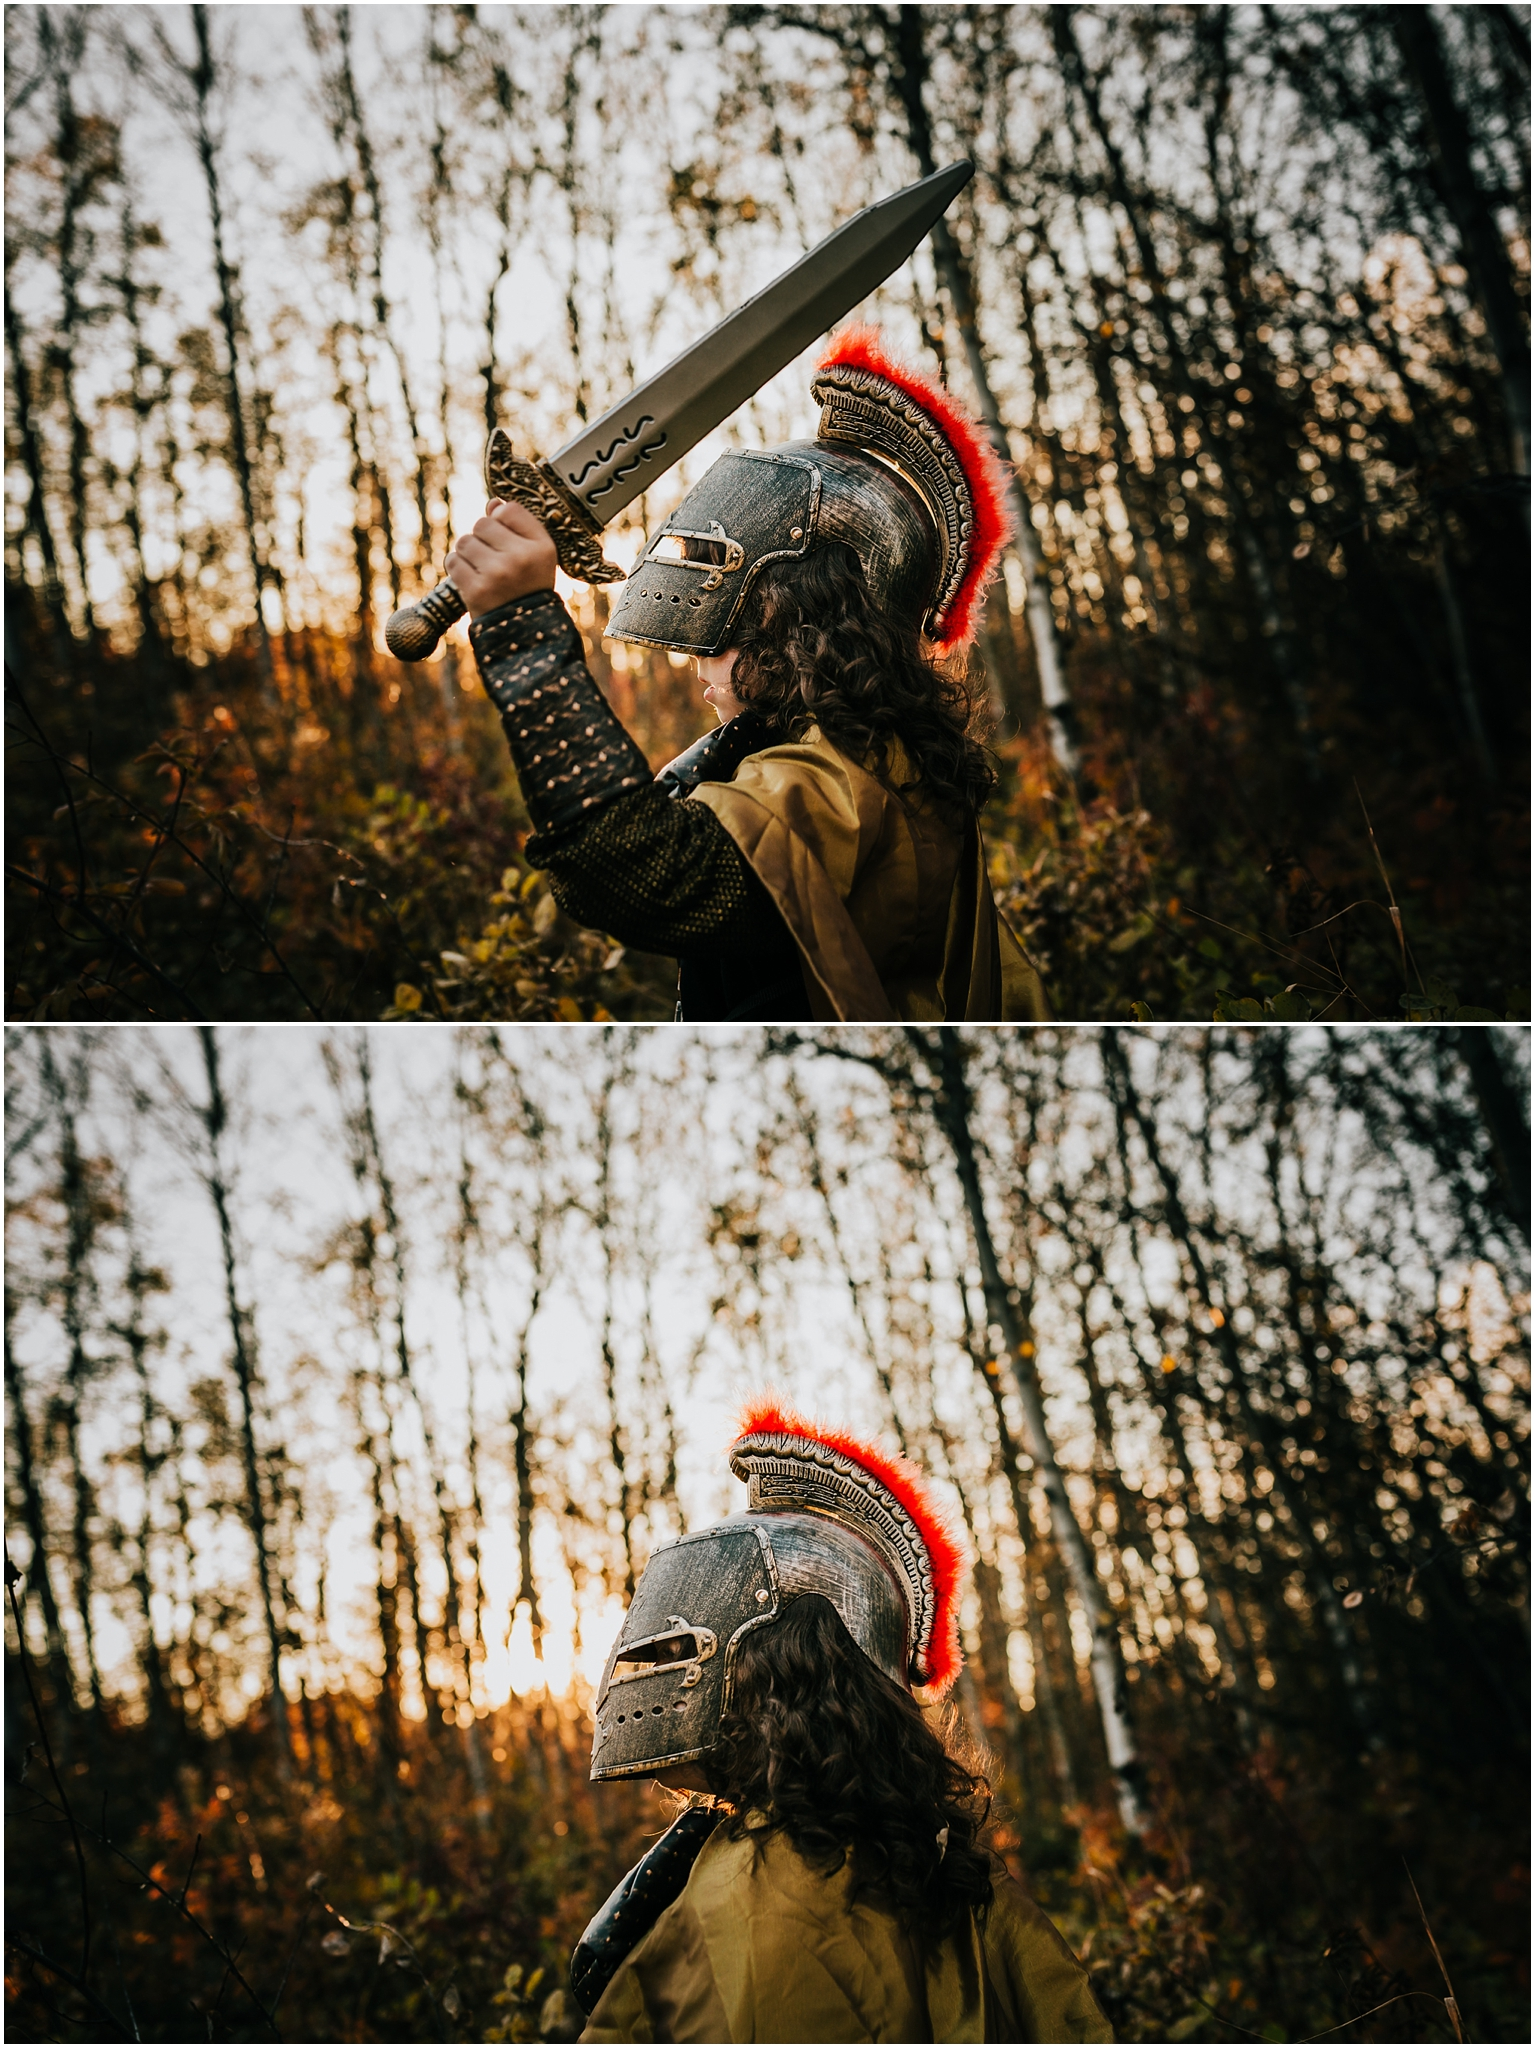 Edmonton Family Photographer - Treelines Photography - Halloween roman knight costume - knight helmet - Edmonton lifestyle photographer